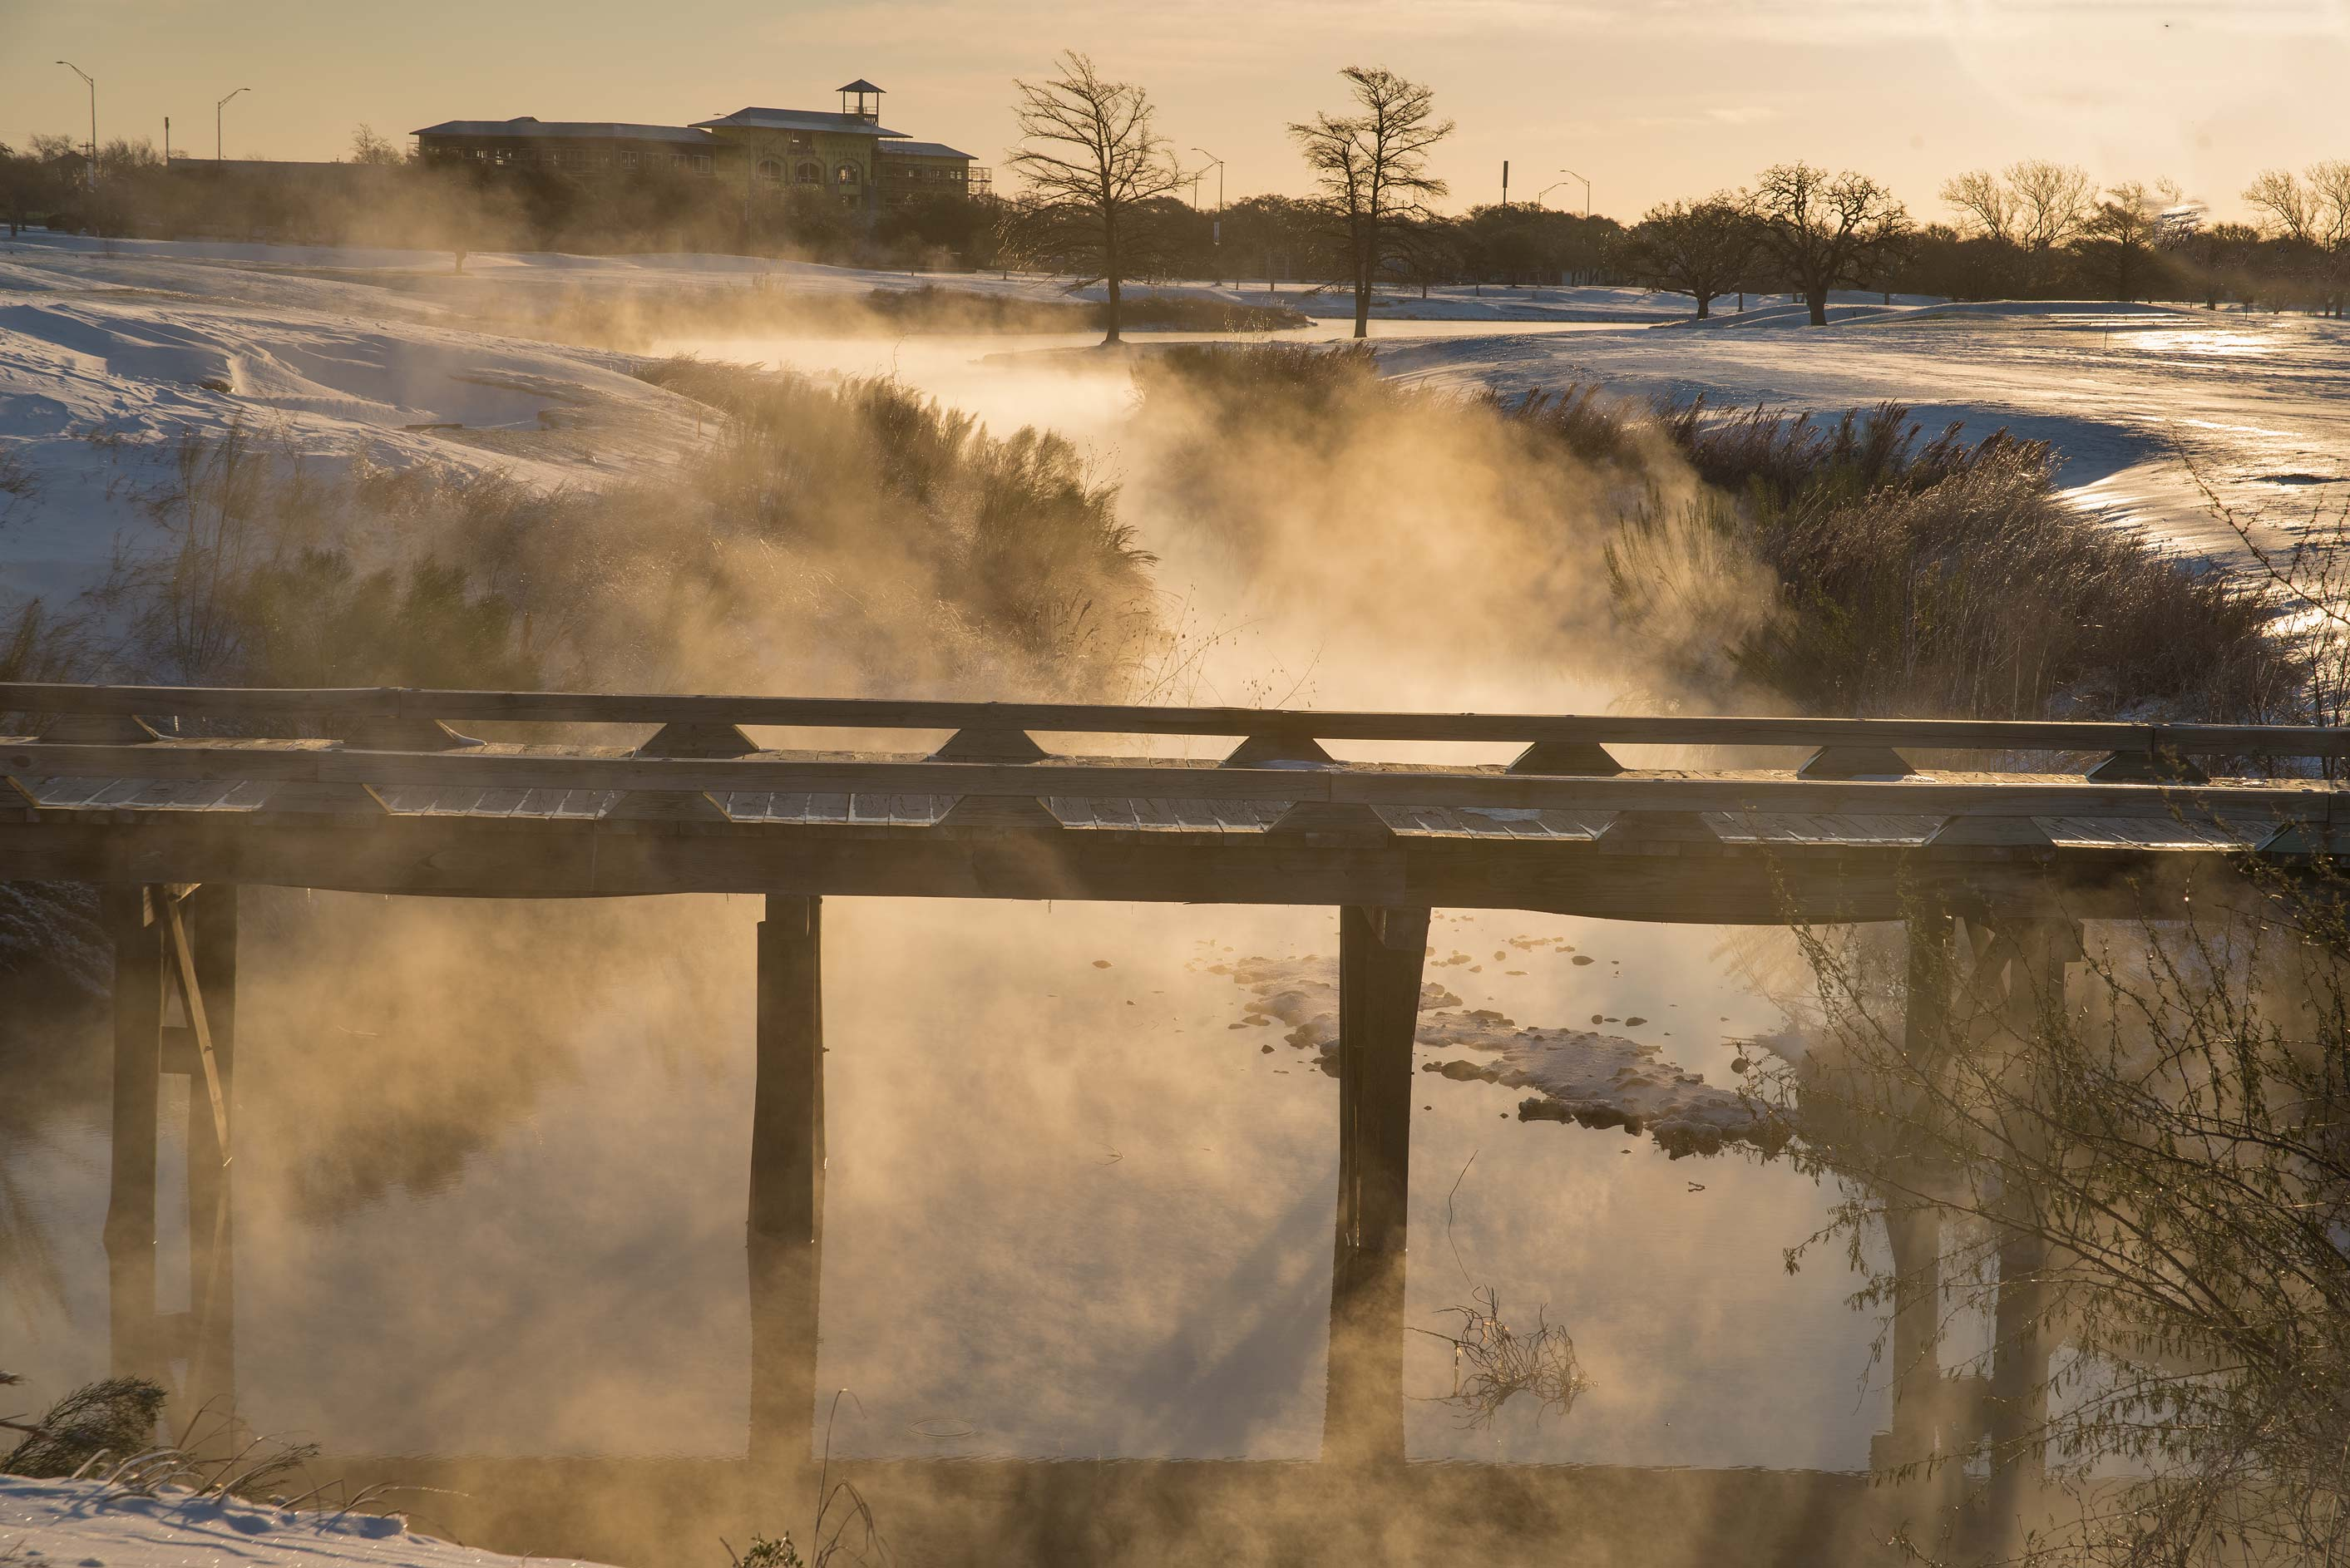 Smoky wooden bridge on a golf course on campus of...M University. College Station, Texas